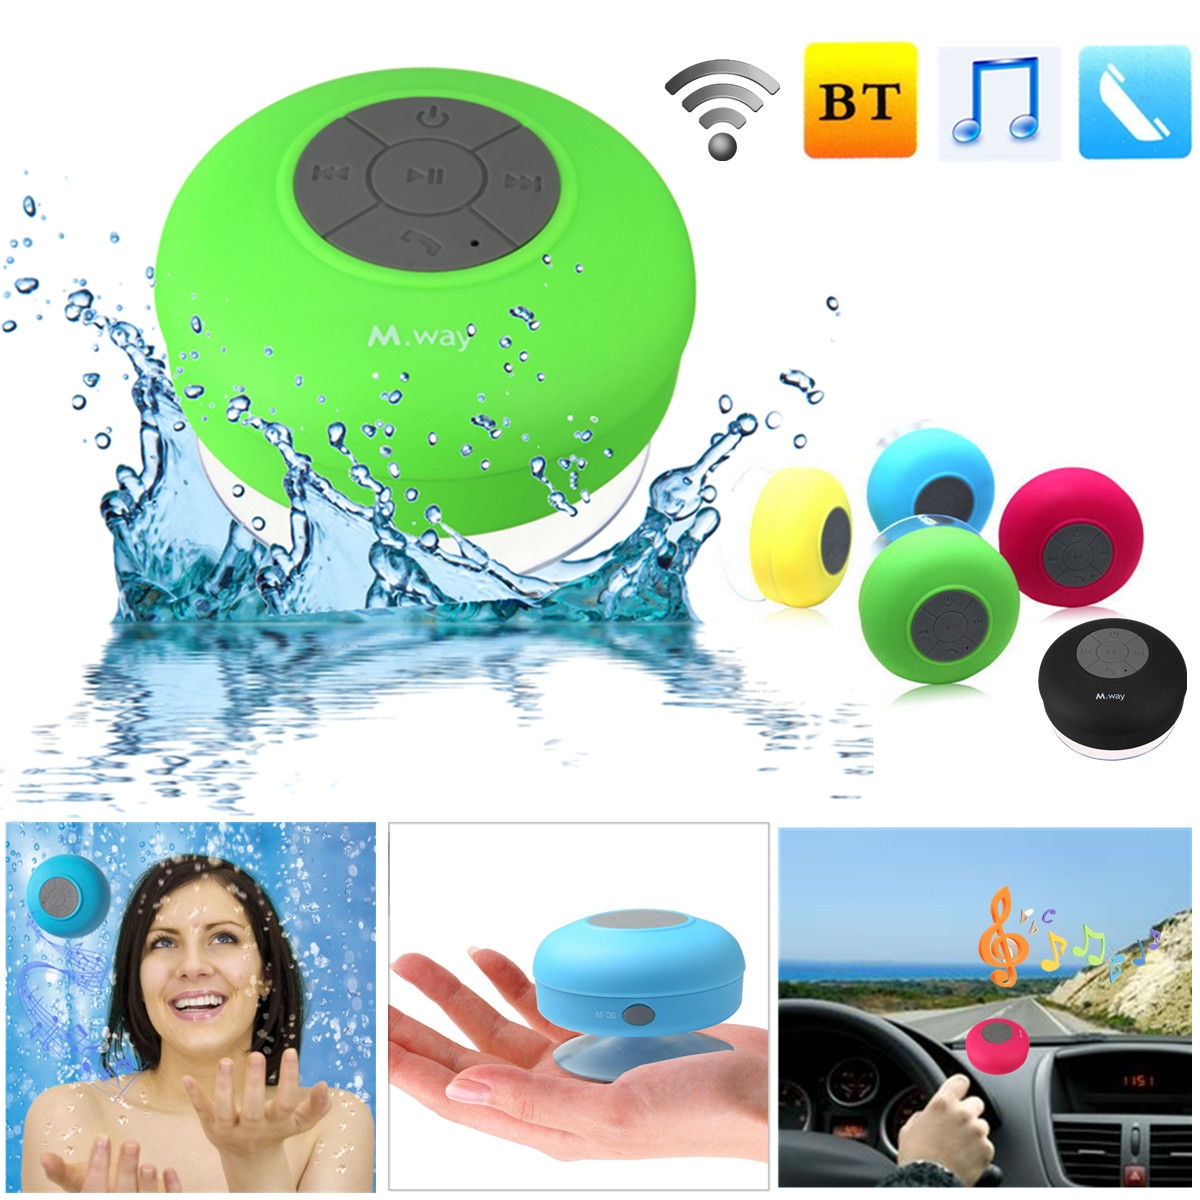 Every Need Want Day Waterproof Bluetooth Speaker Bts 06 Original Search For The Devices Namesbts On Your Smart Phone Or Other 3 Will Make A Beep Sound When Is Connected